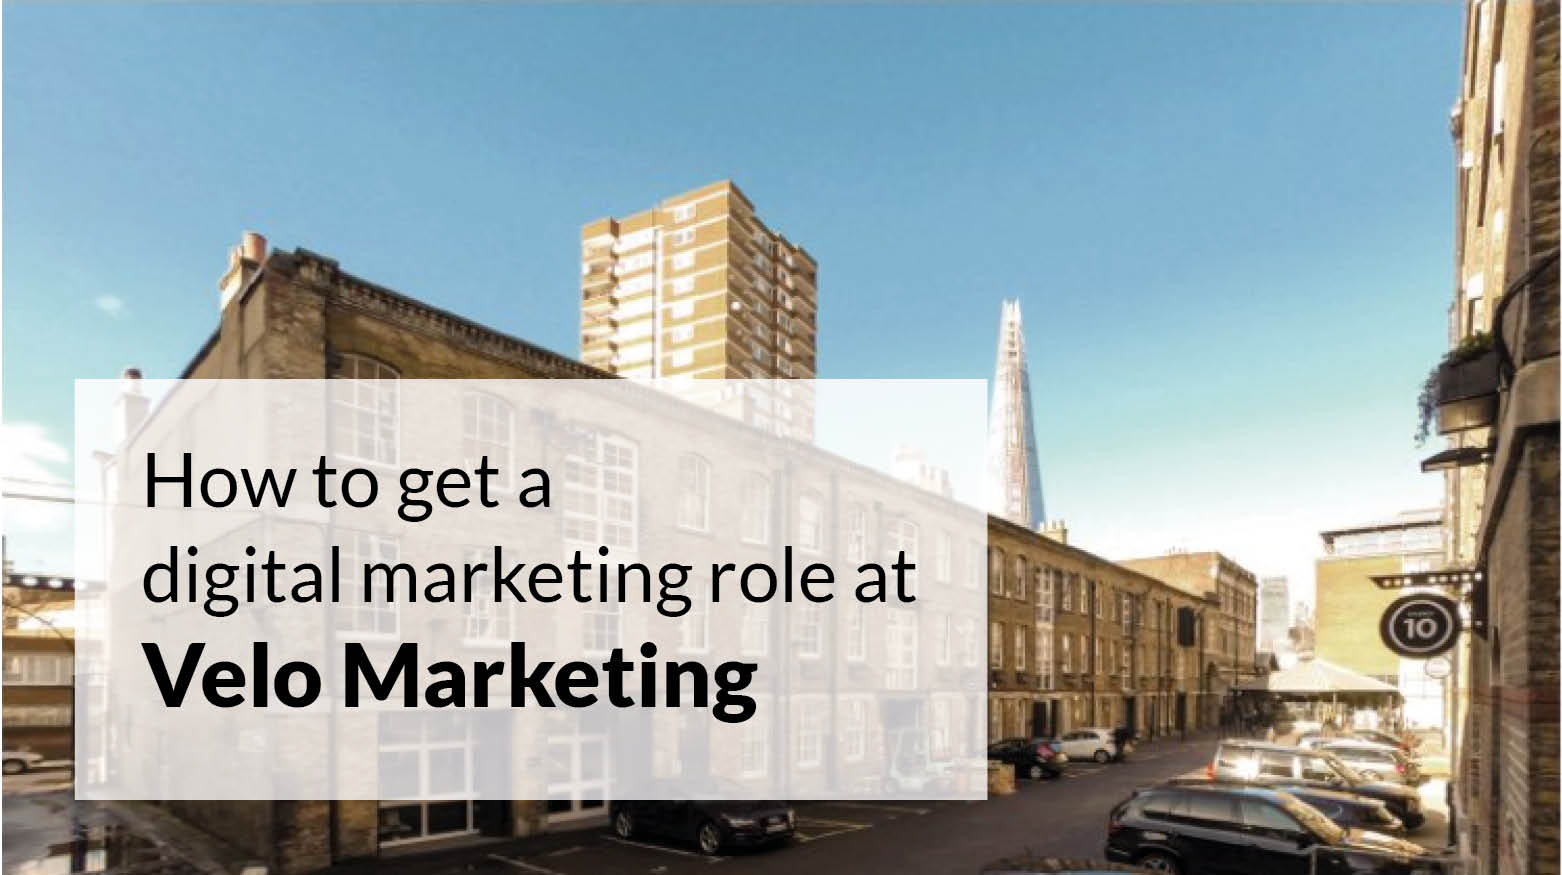 How to get a digital marketing role with our agency – Velo Marketing